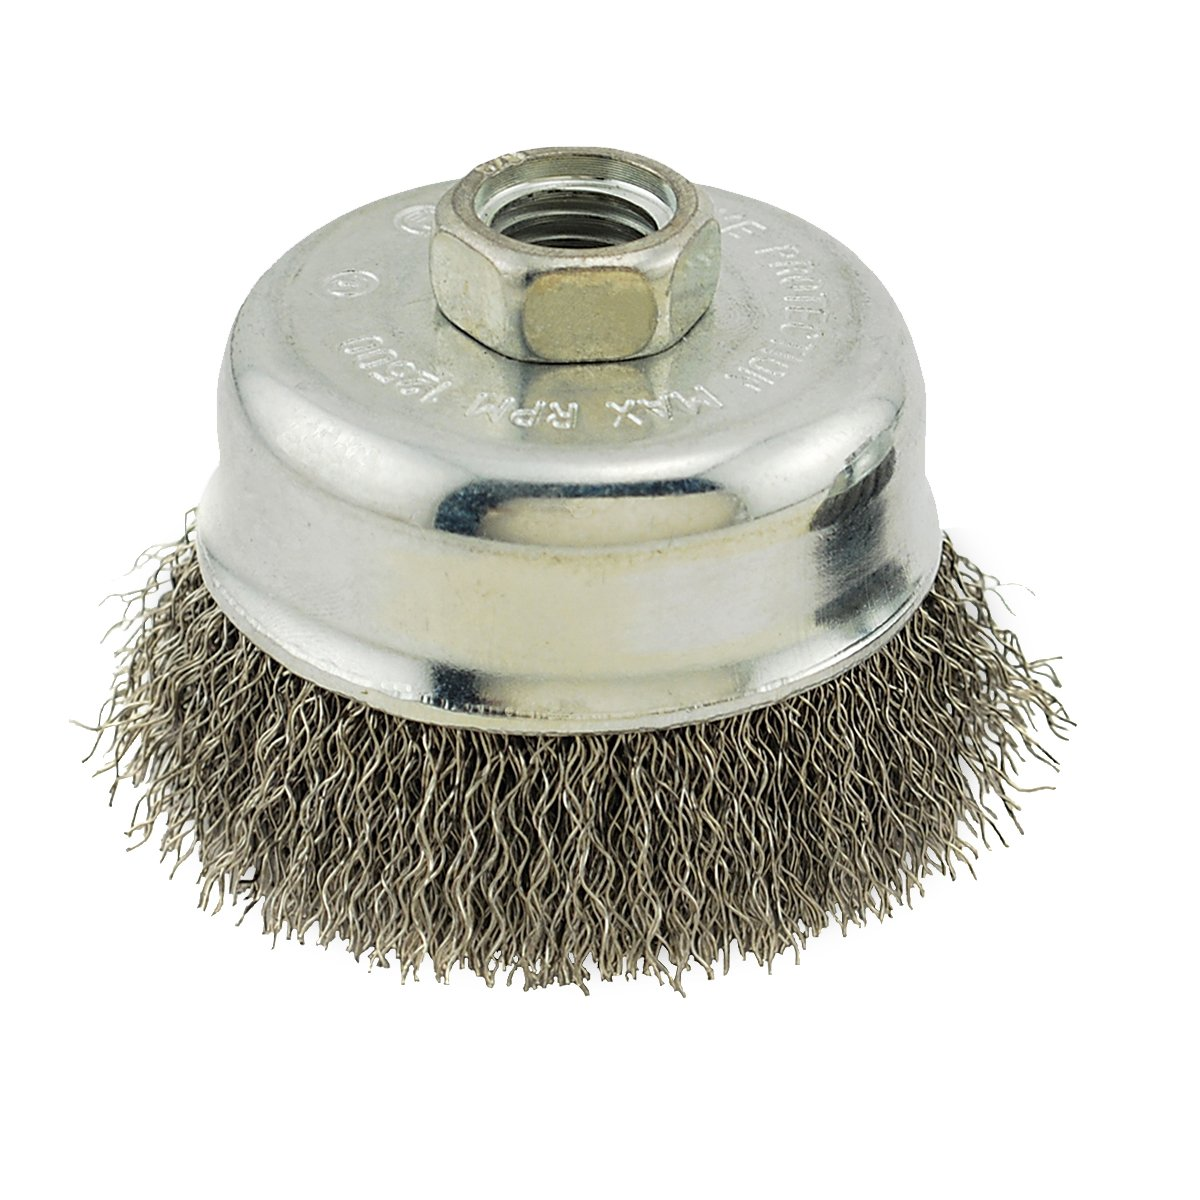 IVY Classic 38910 3 Inch x 5 8 Inch 11 Arbor Stainless Steel Crimped Wire Cup Brush 0.012 Inch Coarse 1 Card